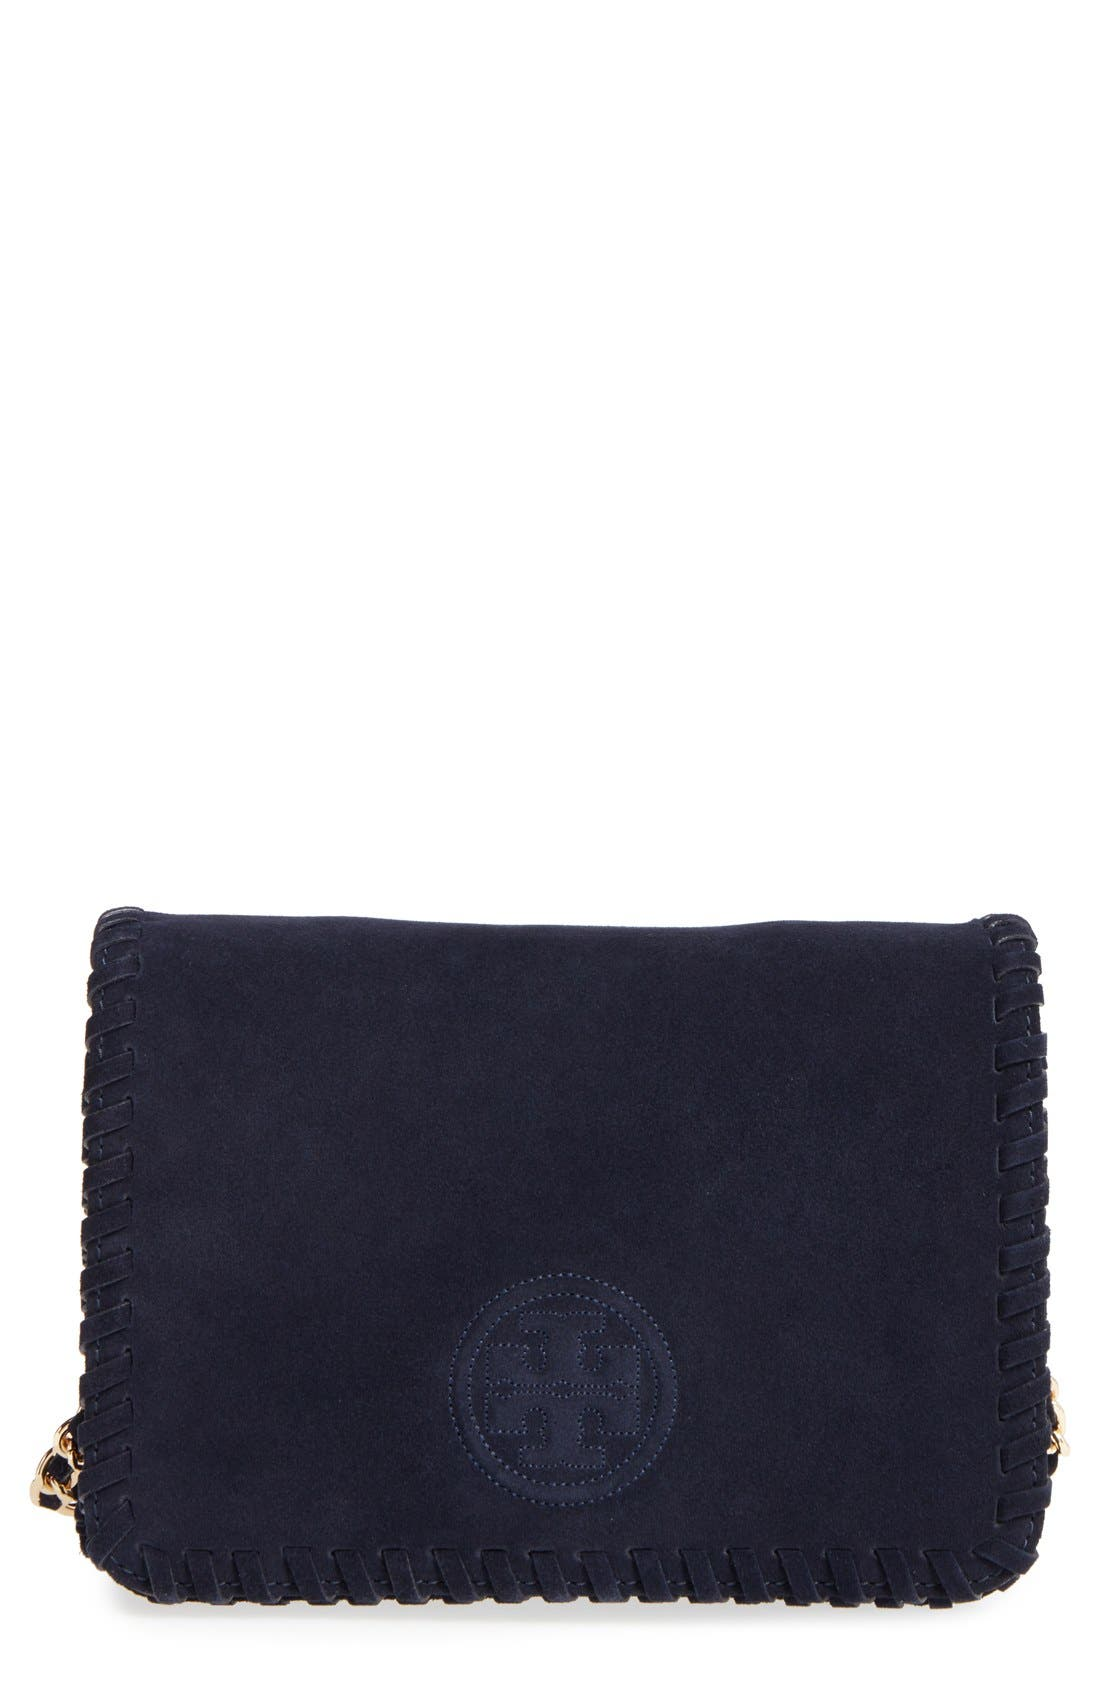 Main Image - Tory Burch 'Marion' Suede Crossbody Bag